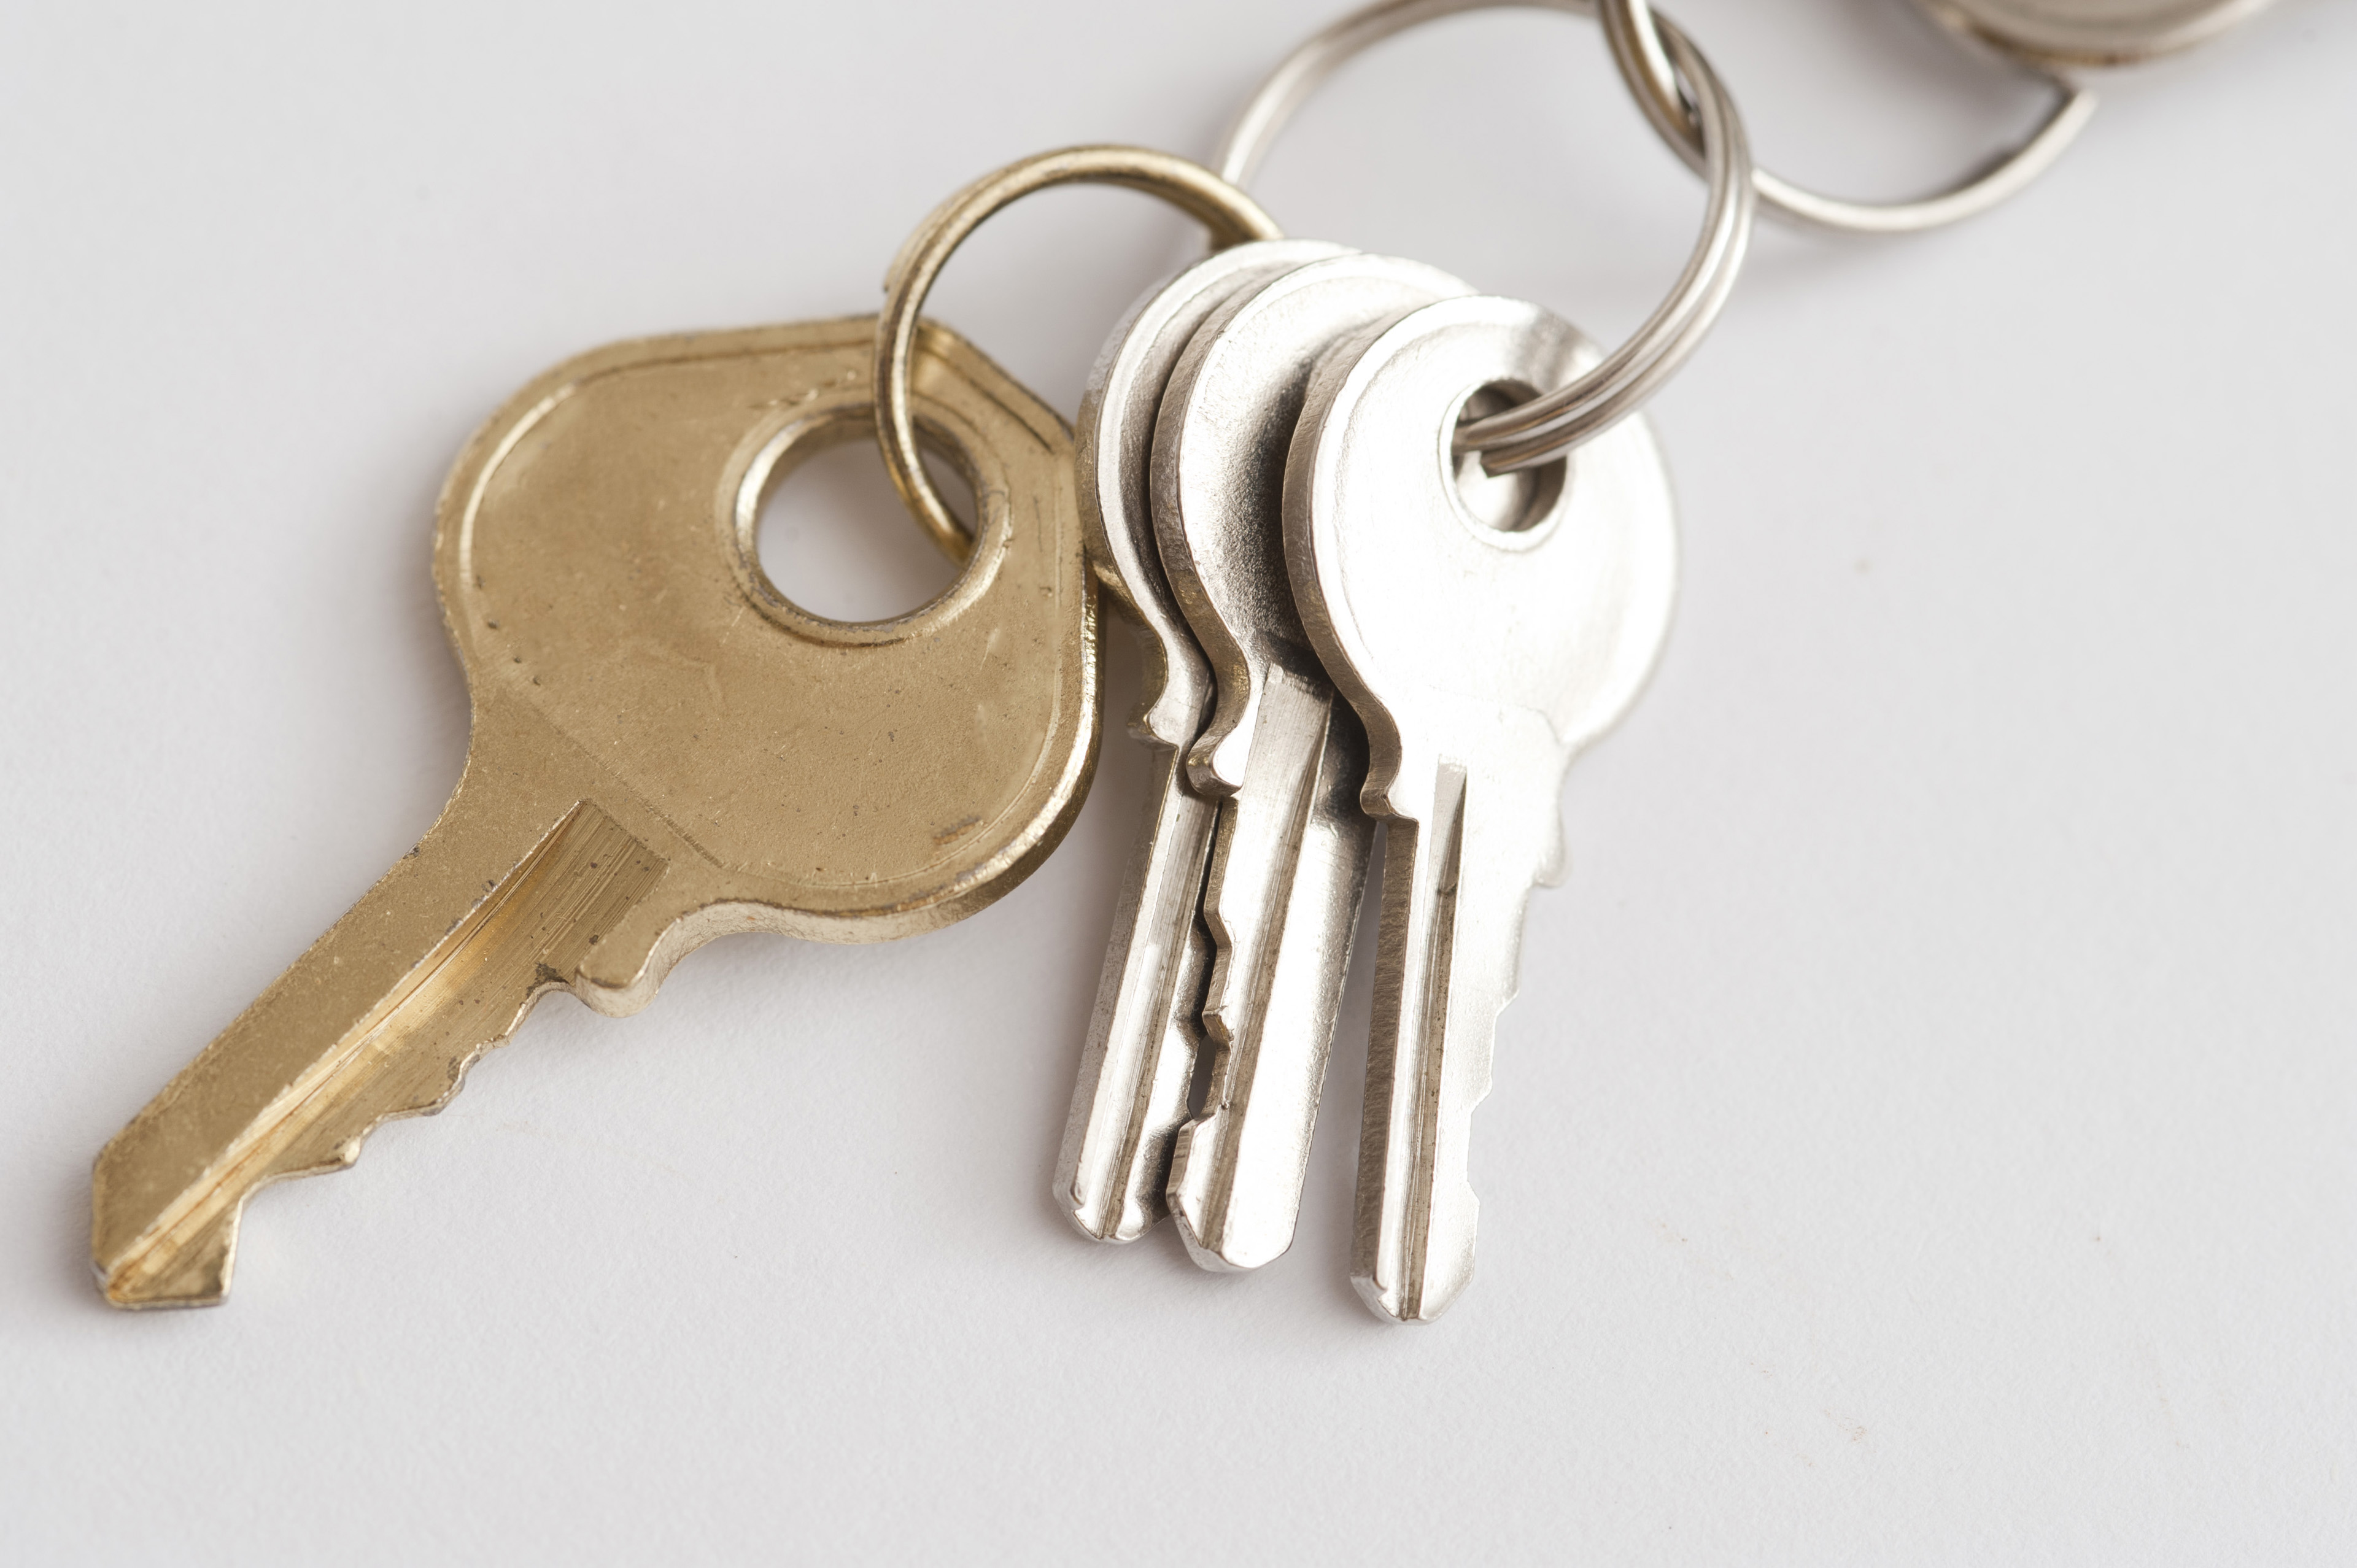 Bunch of luggage keys on a ring to secure baggage on a trip from opportunistic theft by baggage handlers and in hotels